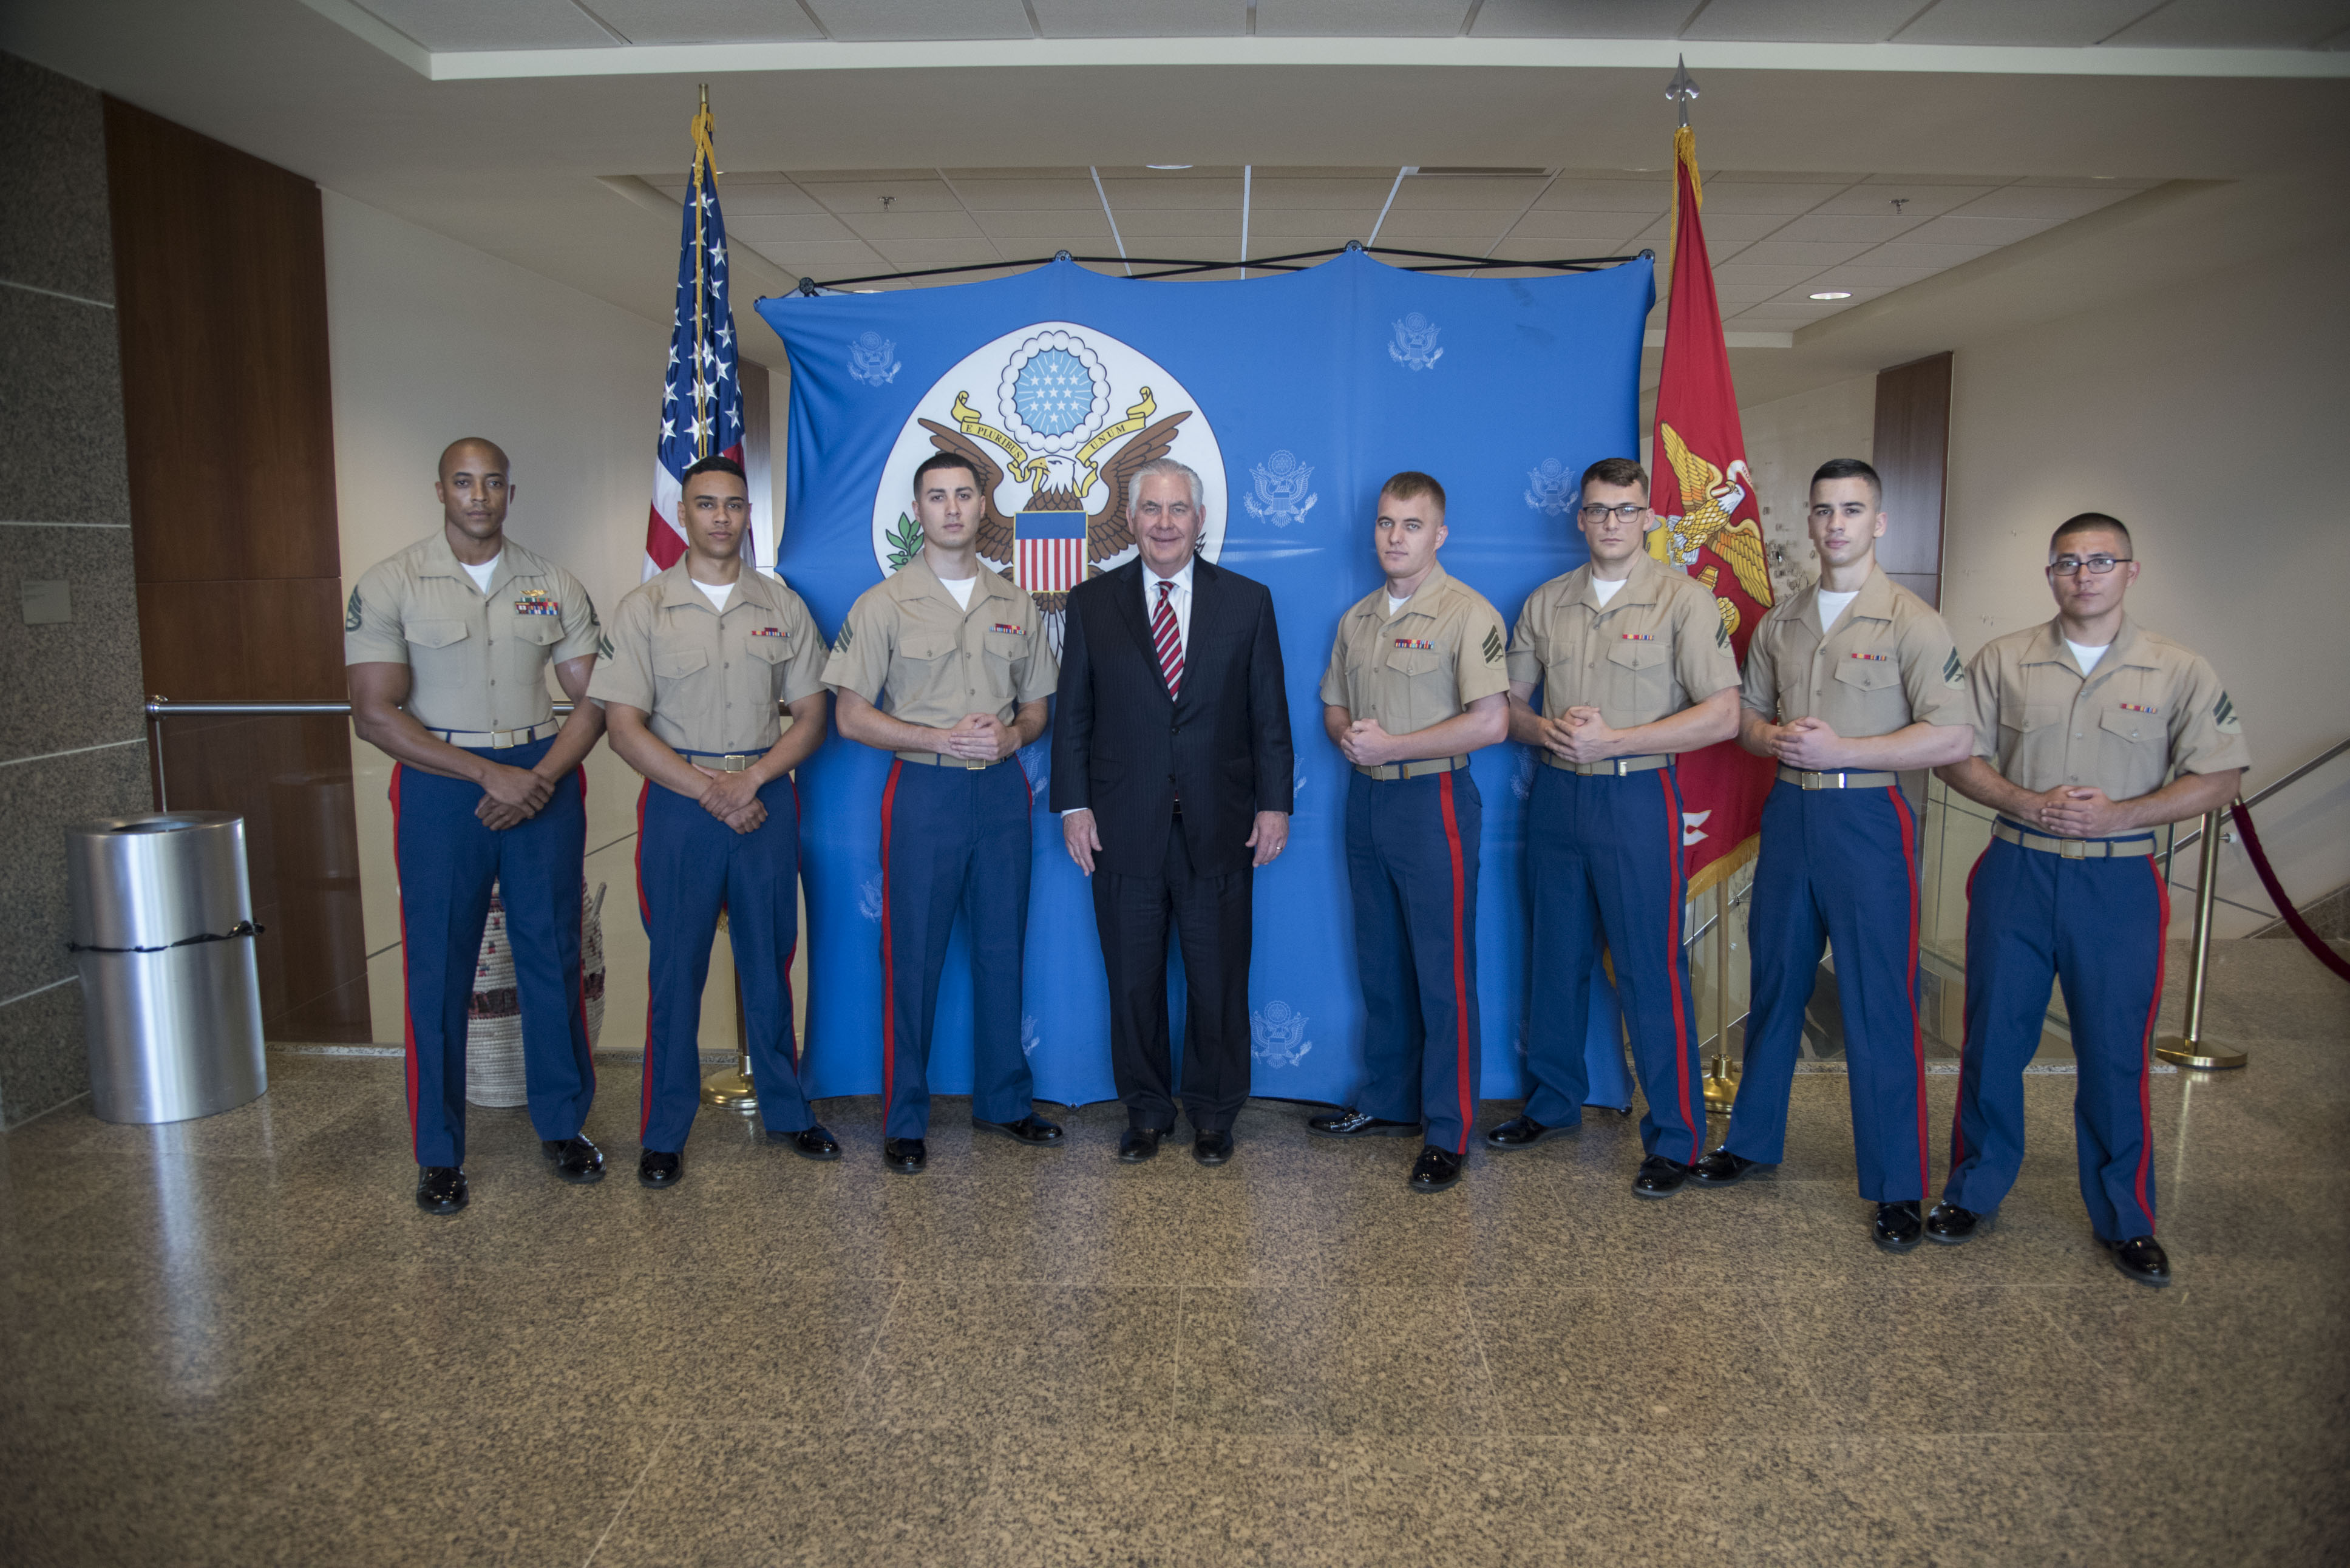 U.S. Secretary of State Rex Tillerson meets with the Marine Security Guard Detachment at the U.S. Embassy in Djibouti, March 9, 2018. Secretary Tillerson traveled to Djibouti to discuss the U.S.-Djiboutian partnership, and exchanged views on bilateral concerns, security threats, and economic reforms. (U.S. Air National Guard photo by Staff Sgt. Allyson L. Manners)